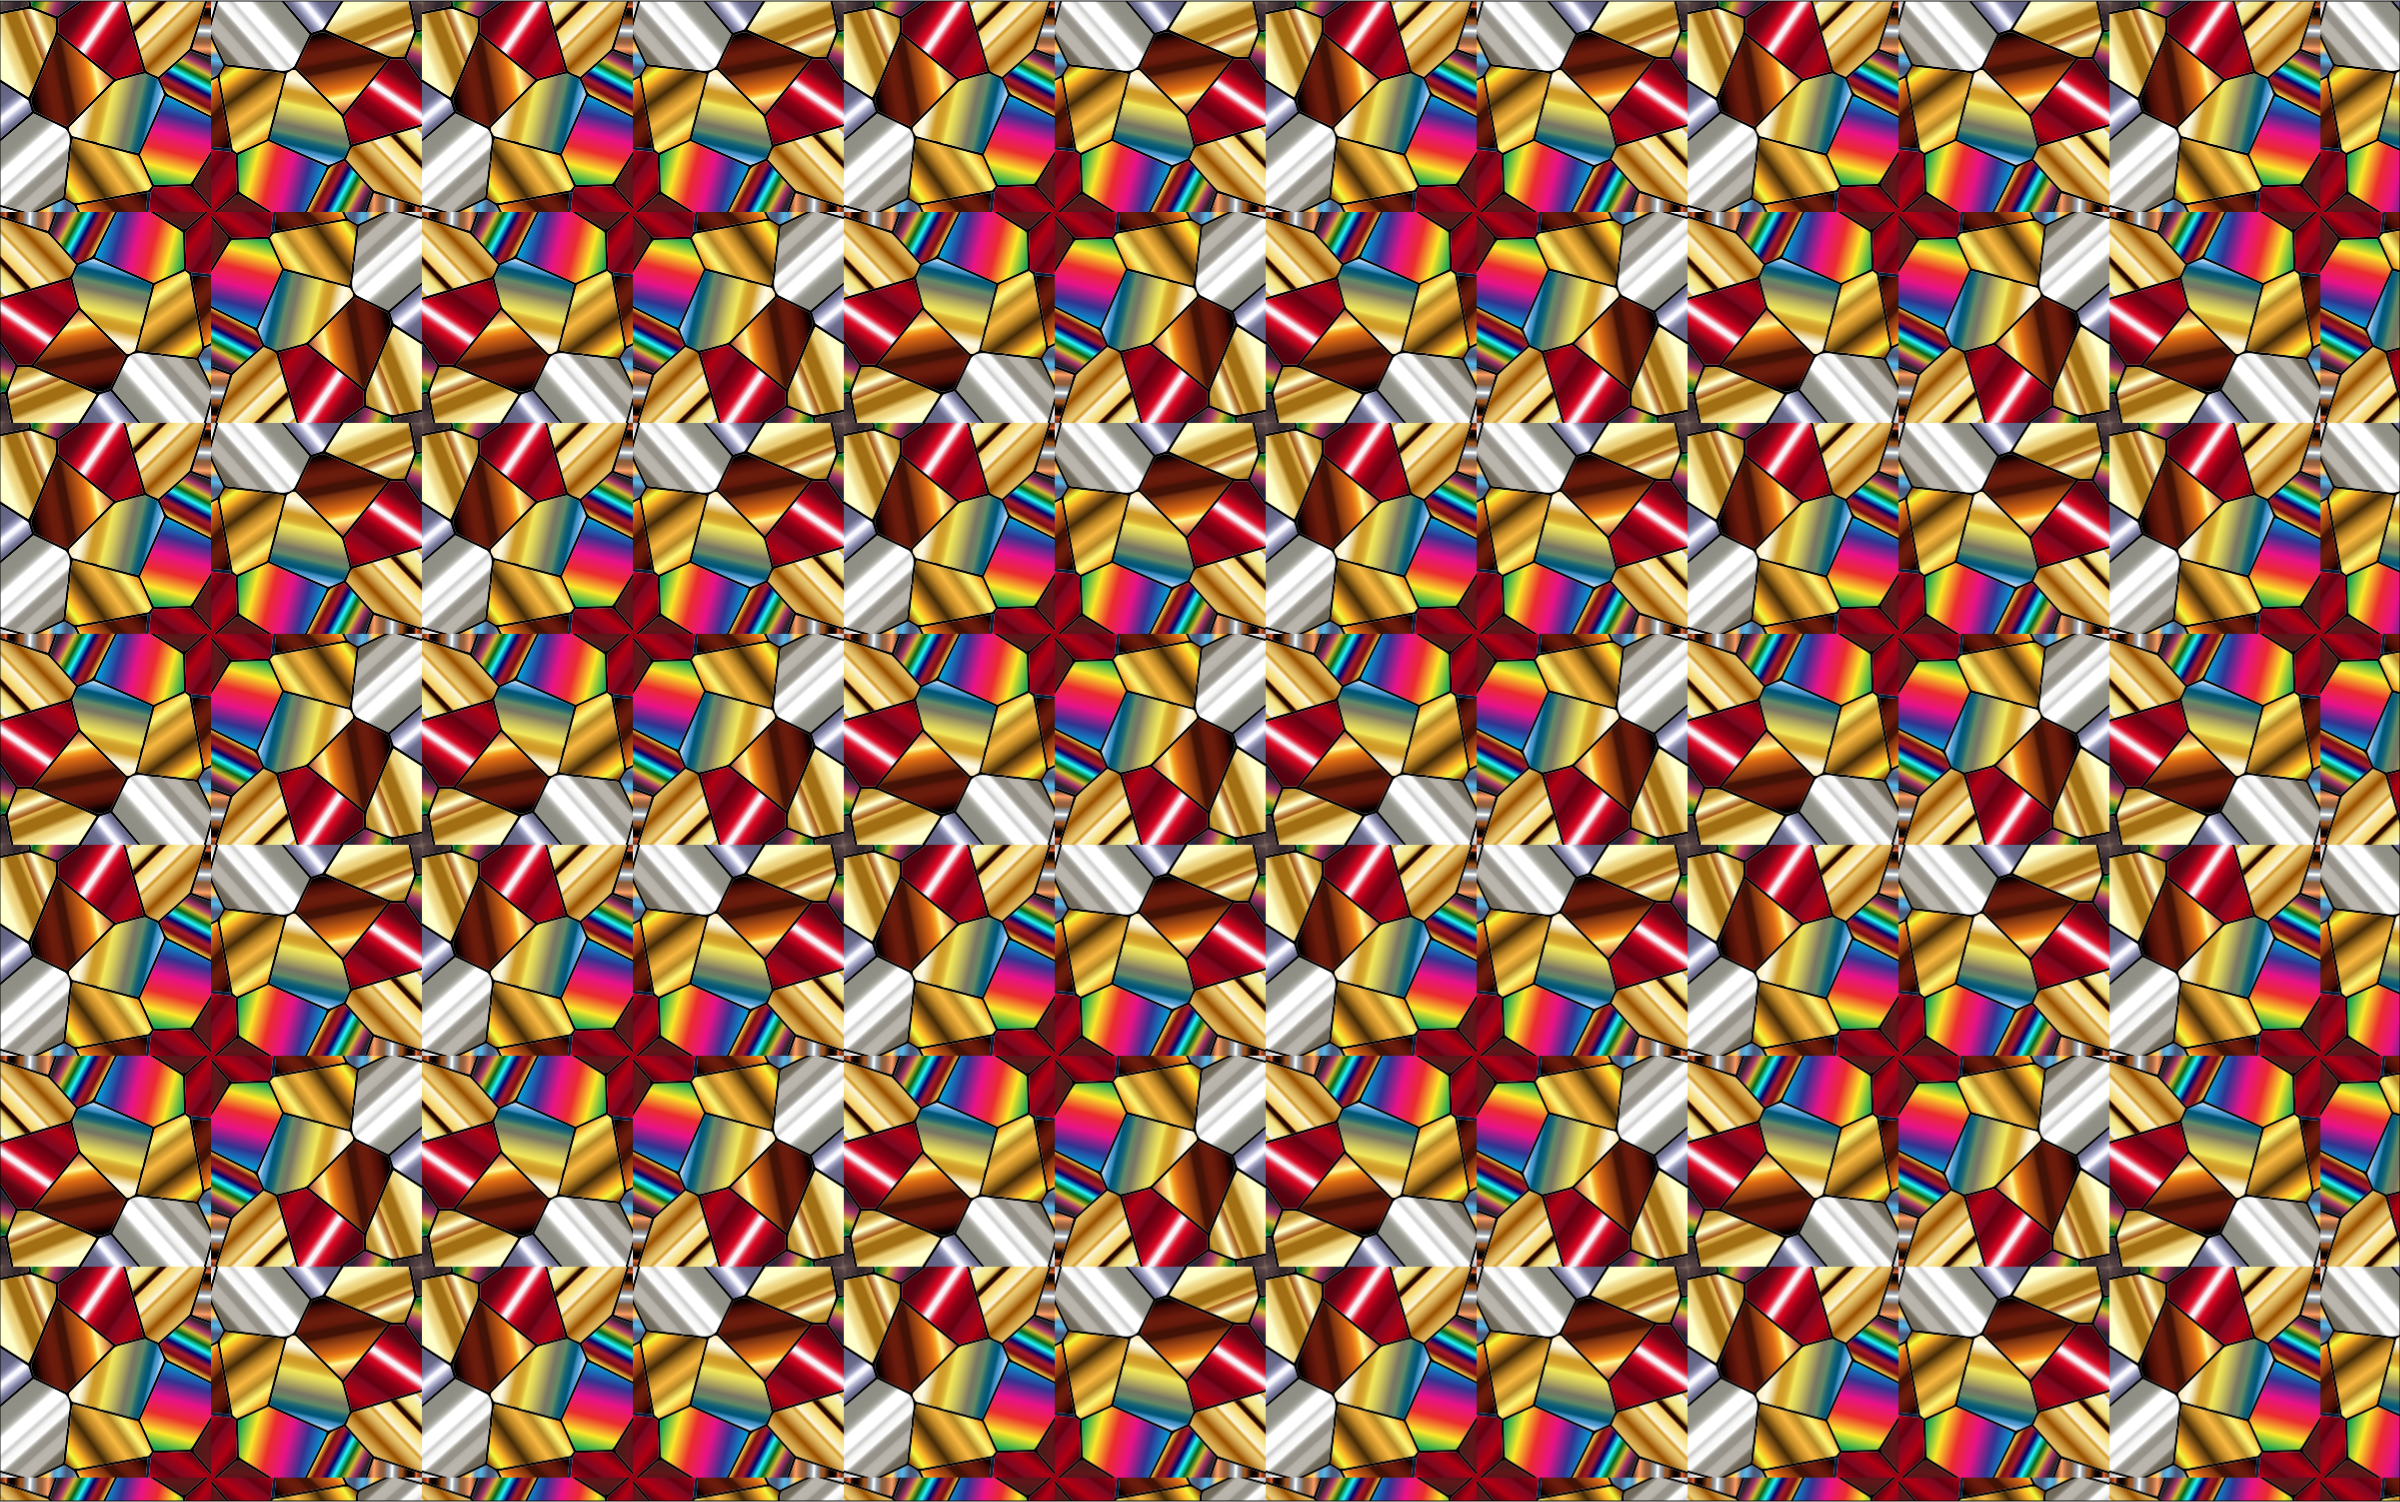 Seamless Pattern 138 by GDJ